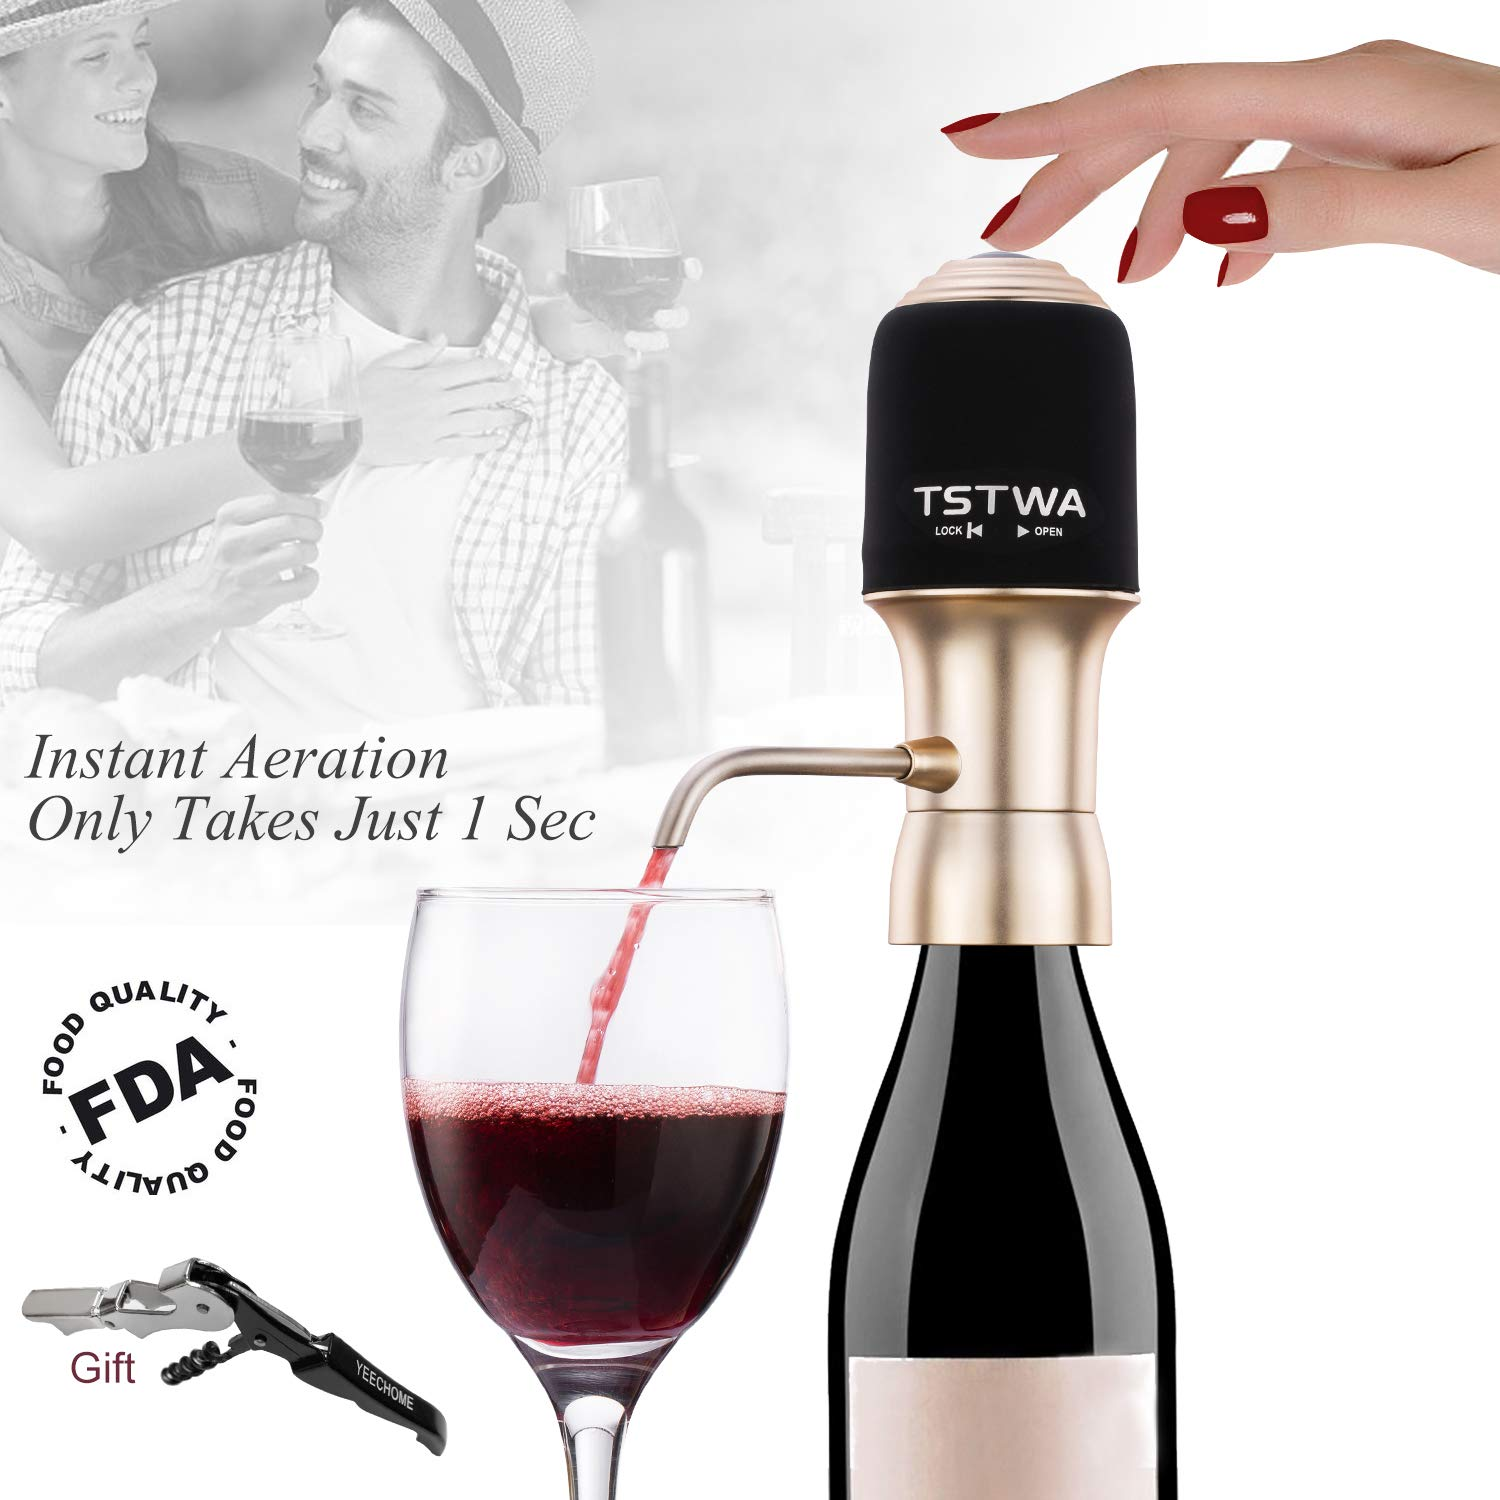 Electric Wine Aerator Decanter Pump Dispenser & Waiters Corkscrew Instant One Touch Portable Red & White Wine Accessories Aeration For Wine and Spirit Beginner and Enthusiast -Spout Pourer - Gift Box Wine aerator factory